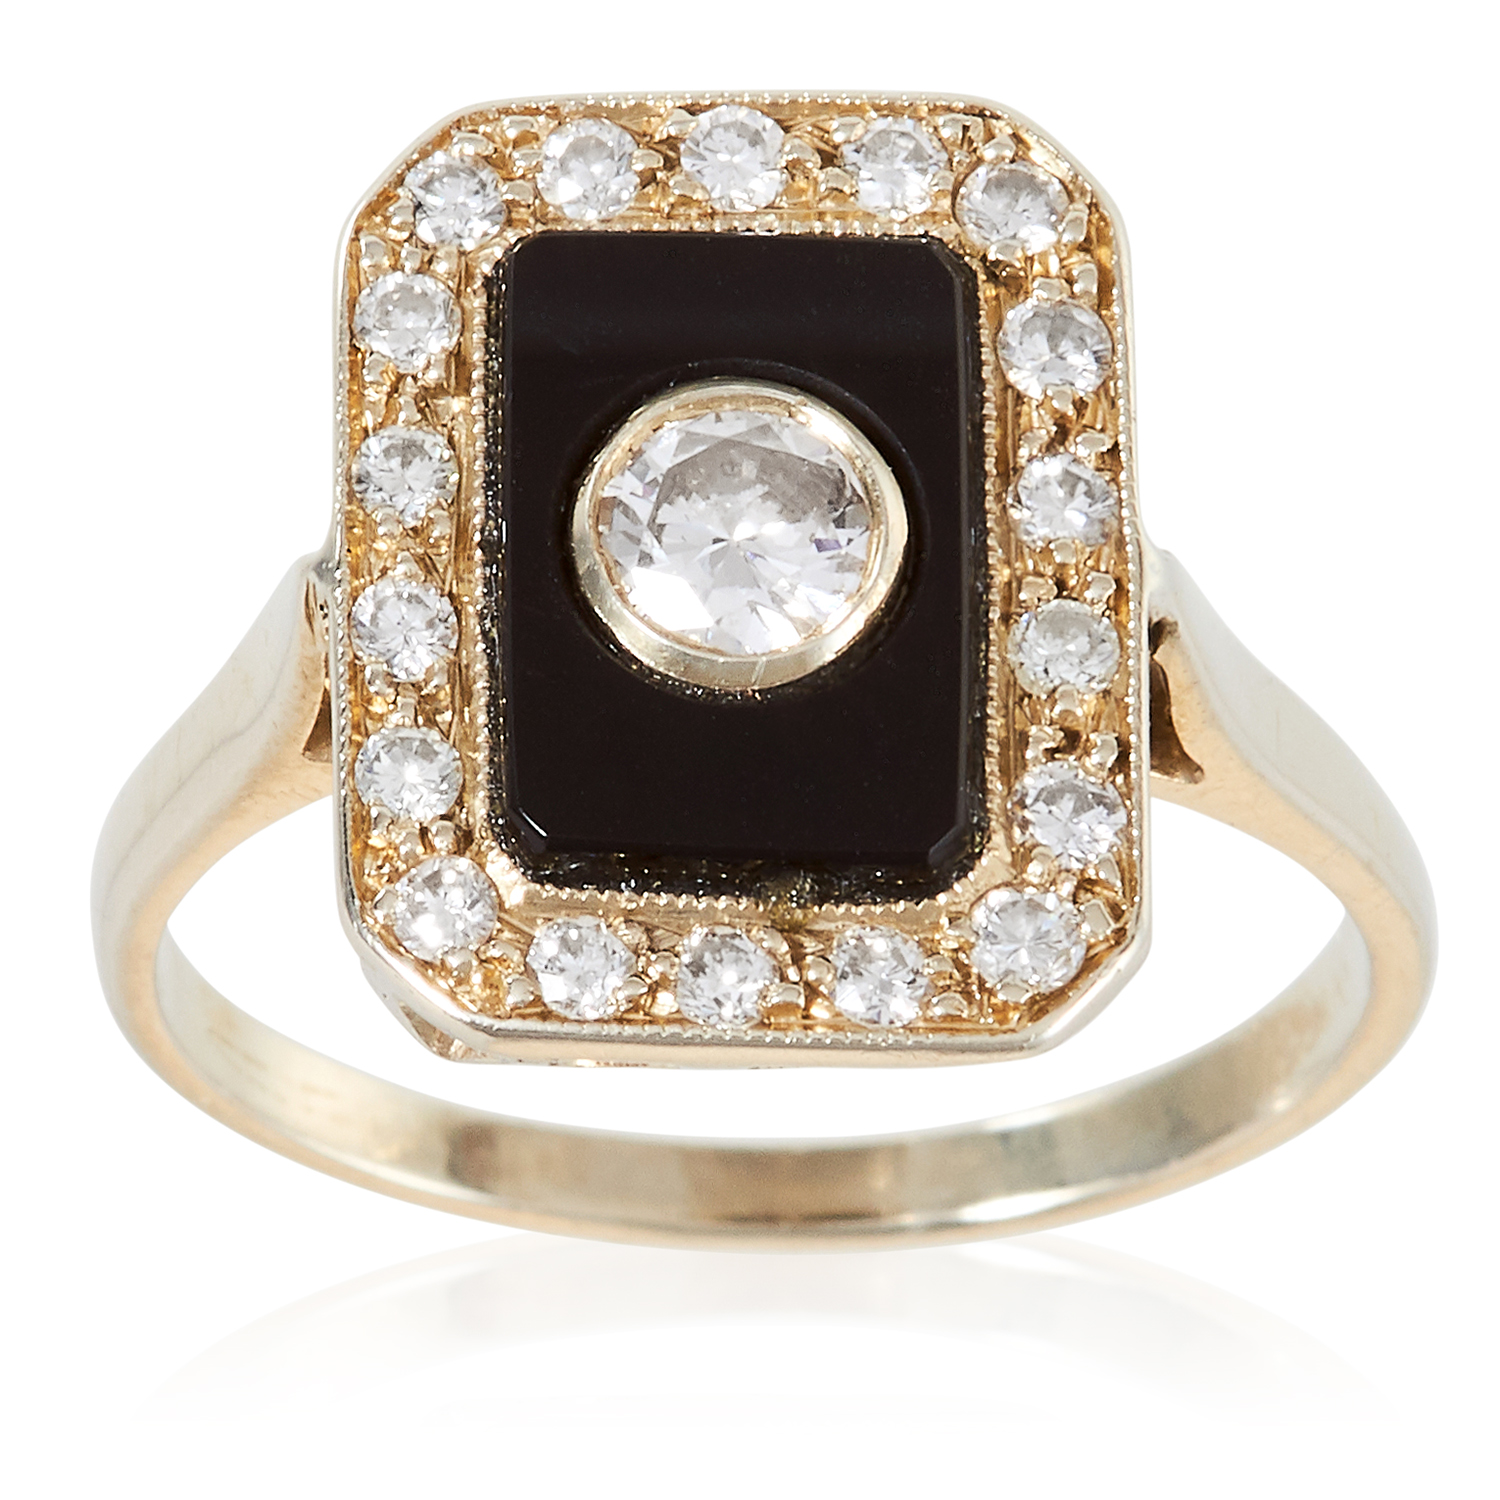 AN ART DECO DIAMOND AND ONYX RING in 18ct gold, the central 0.23 carat round cut diamond set against